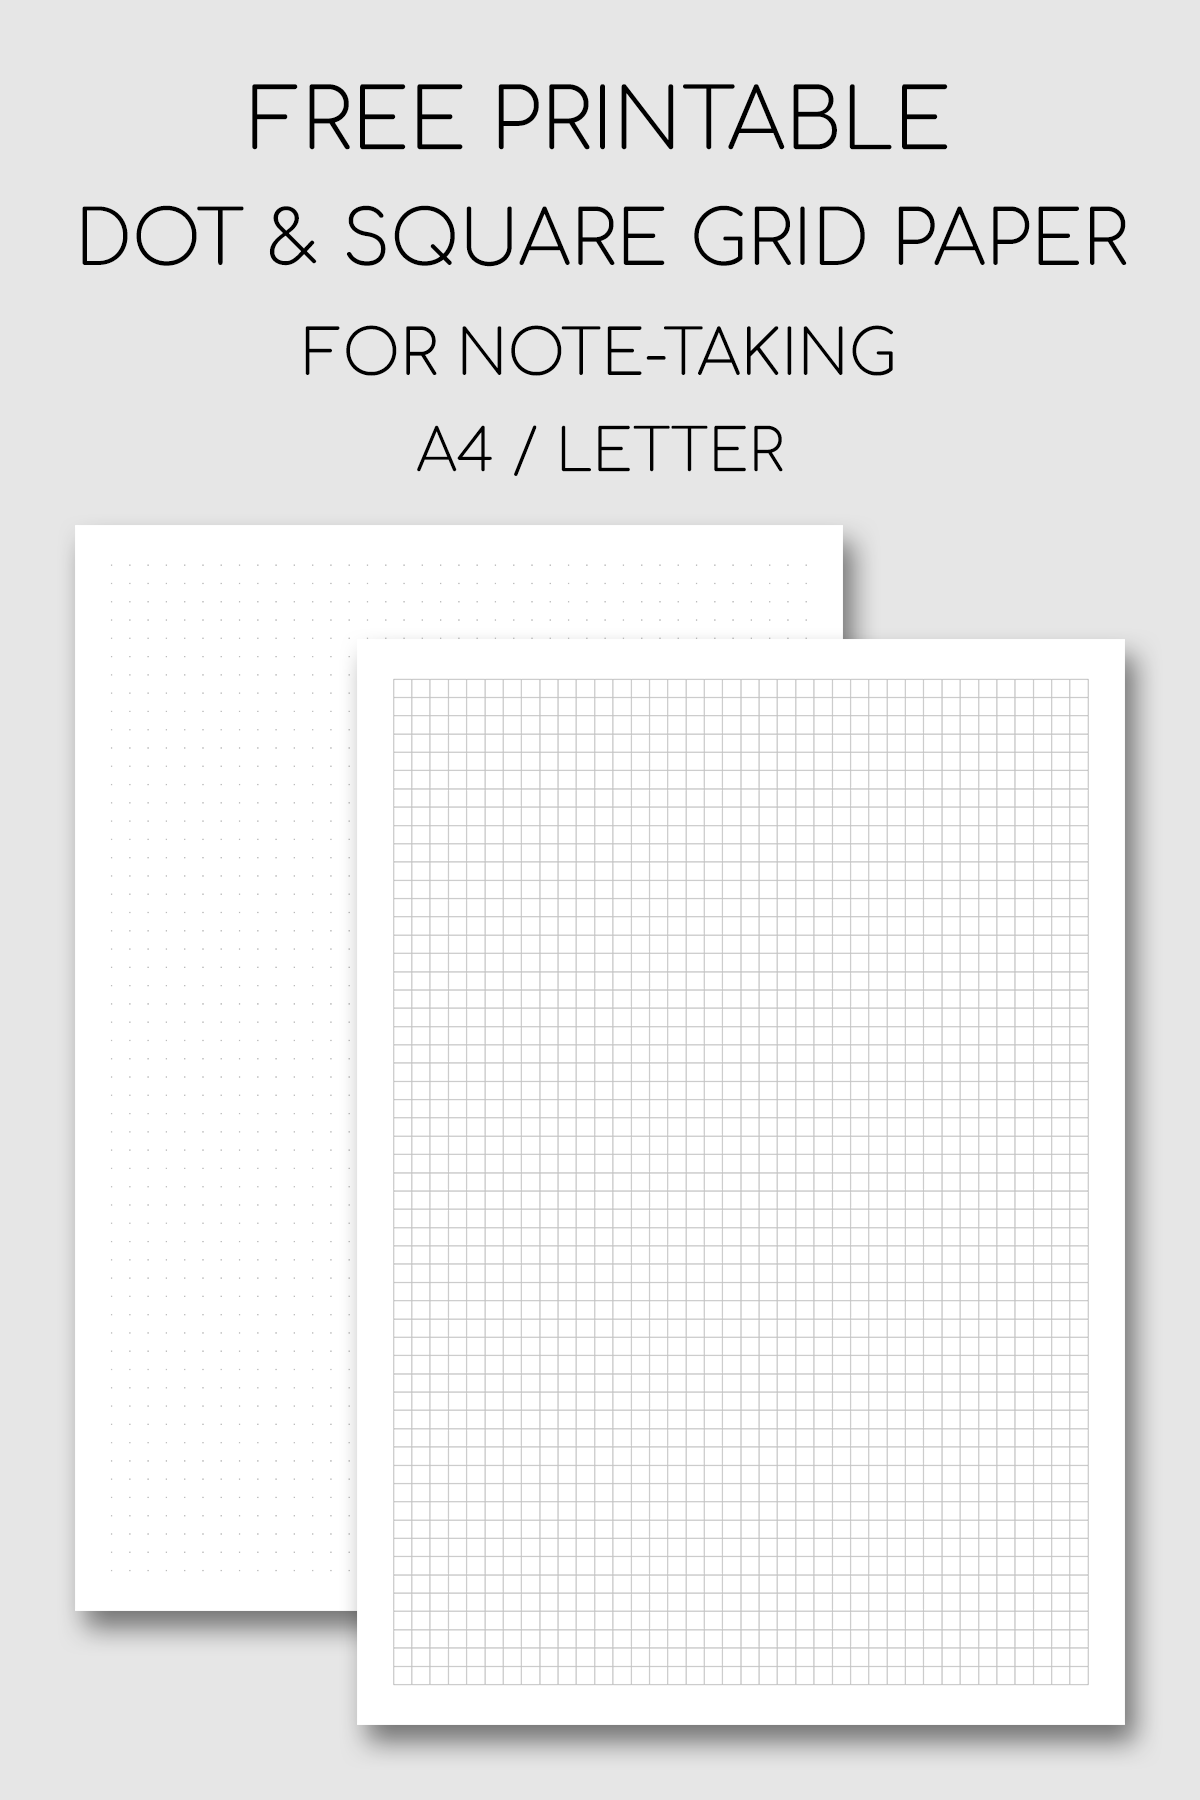 Printable Note Taking Paper Dot And Square Grid Grid Paper Printable Printable Graph Paper Printable Notes